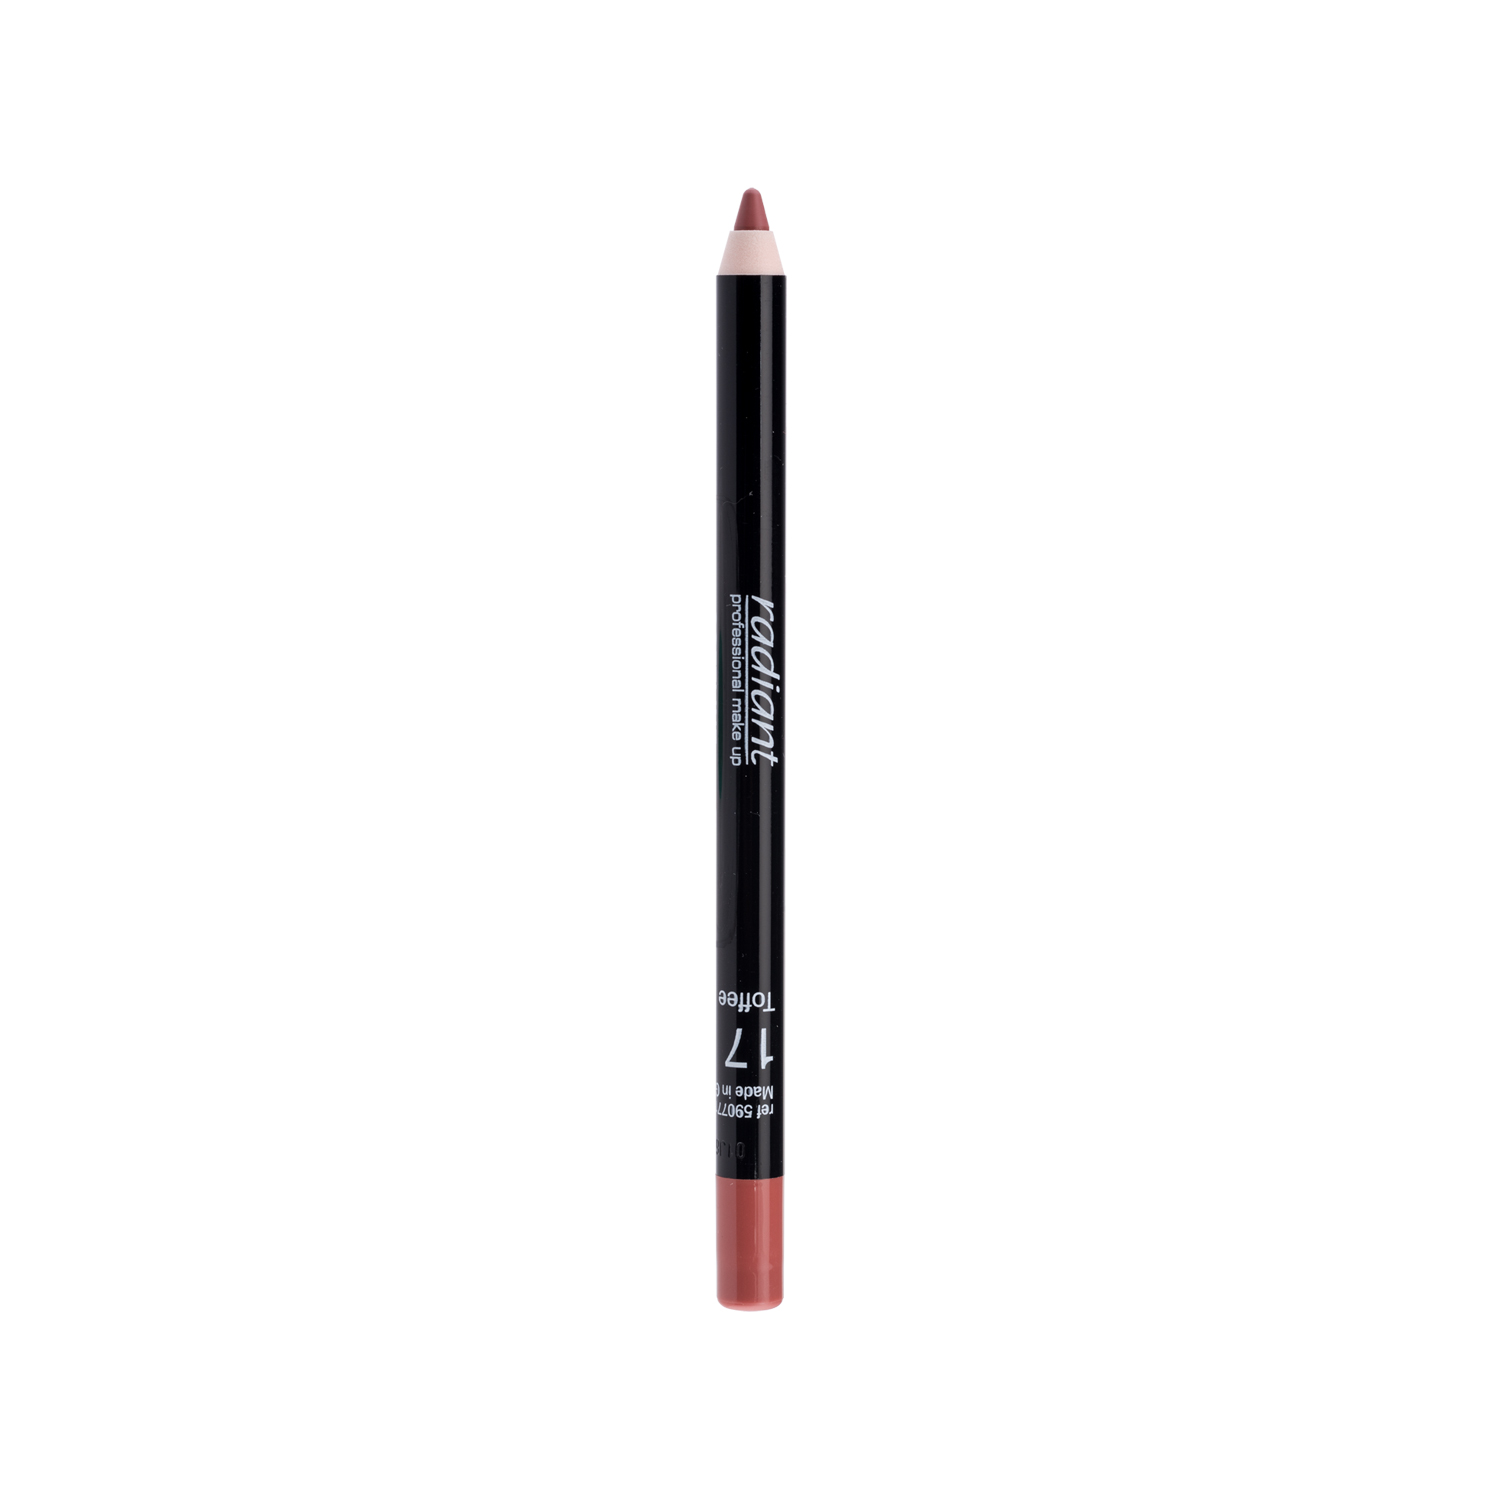 SOFTLINE WATERPROOF LIP PENCIL (17 Toffee)